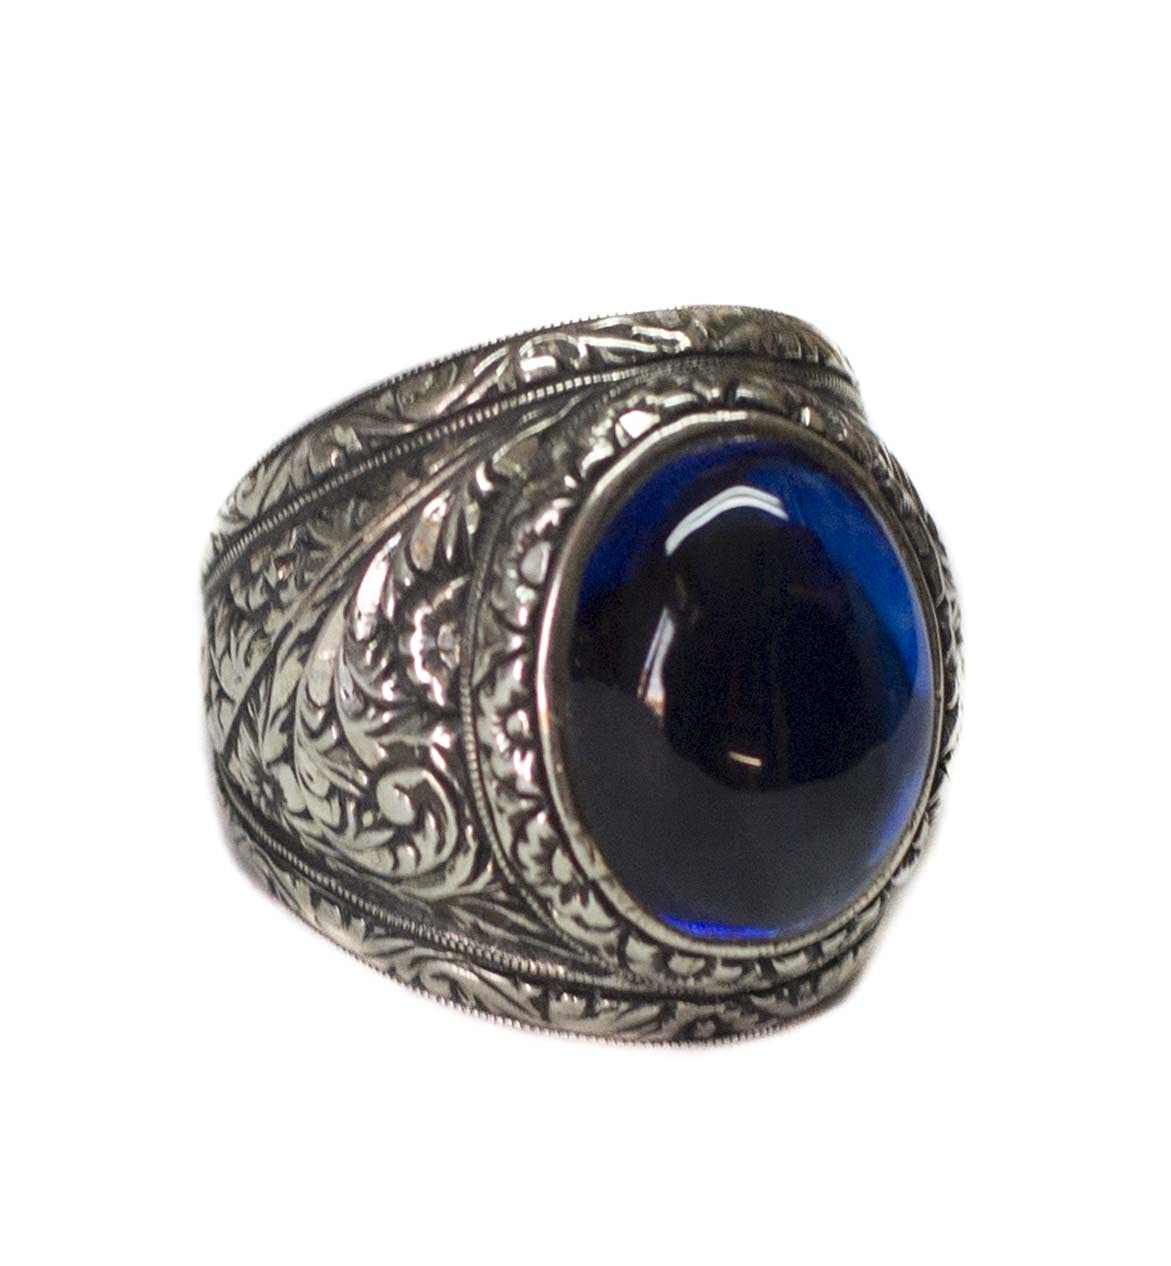 Steel Pen Craft Handmade cz Blue-Agate Stone Personalized Ring Falcon Jewelry Sterling Silver Men Ring